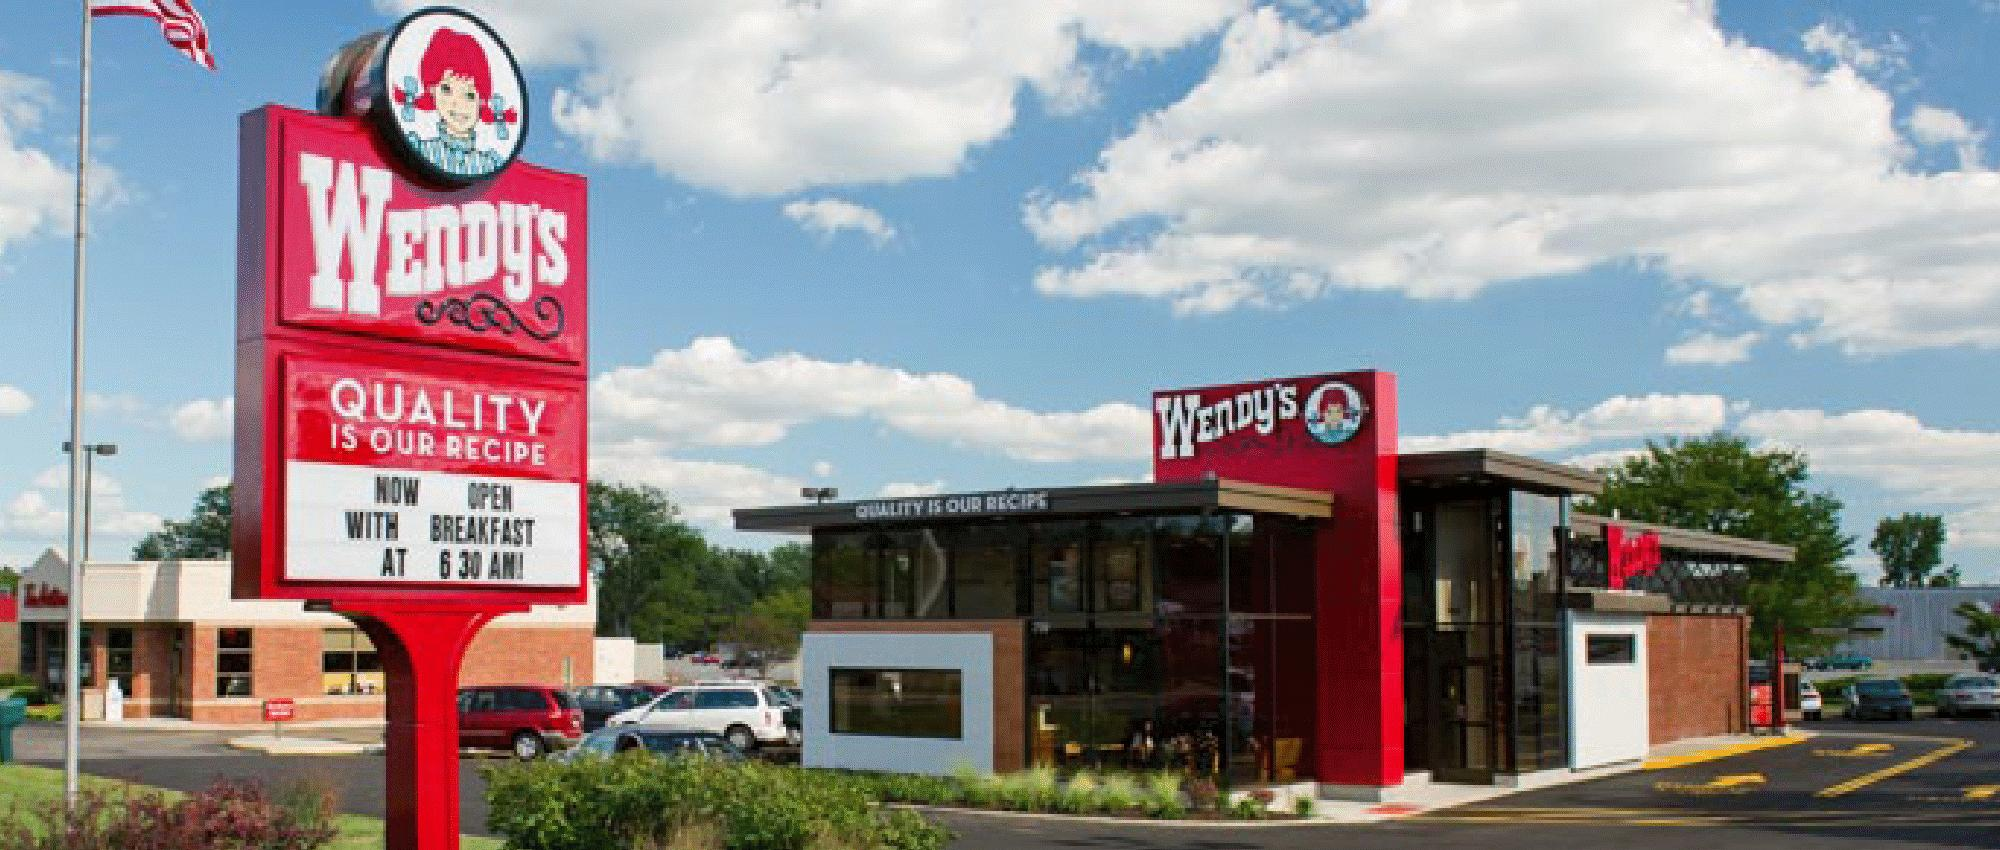 Outstanding Wendy's Restaurant 2000 x 850 · 259 kB · jpeg